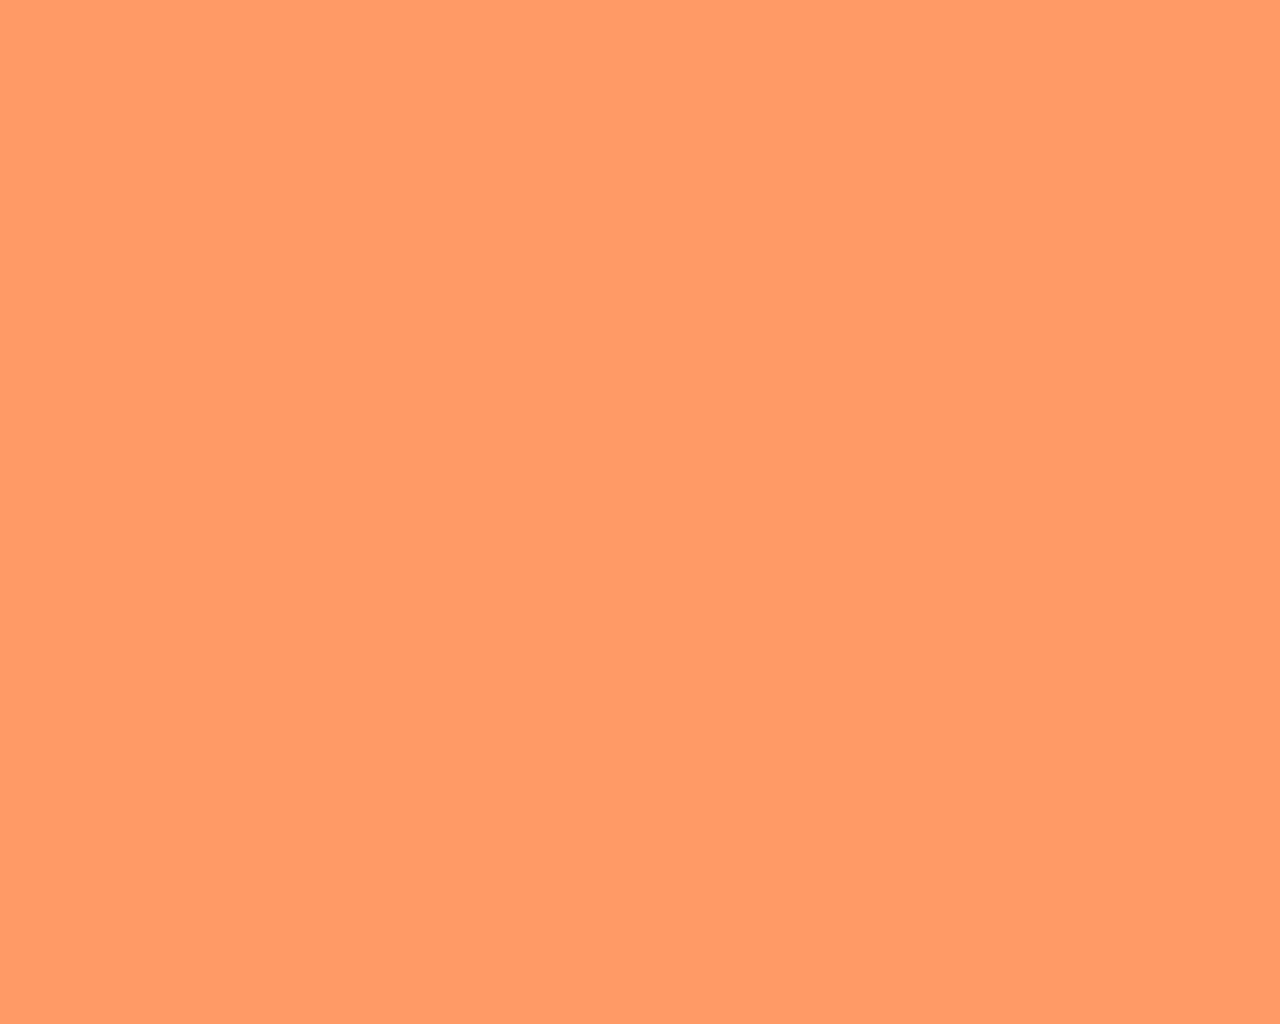 1280x1024 Atomic Tangerine Solid Color Background